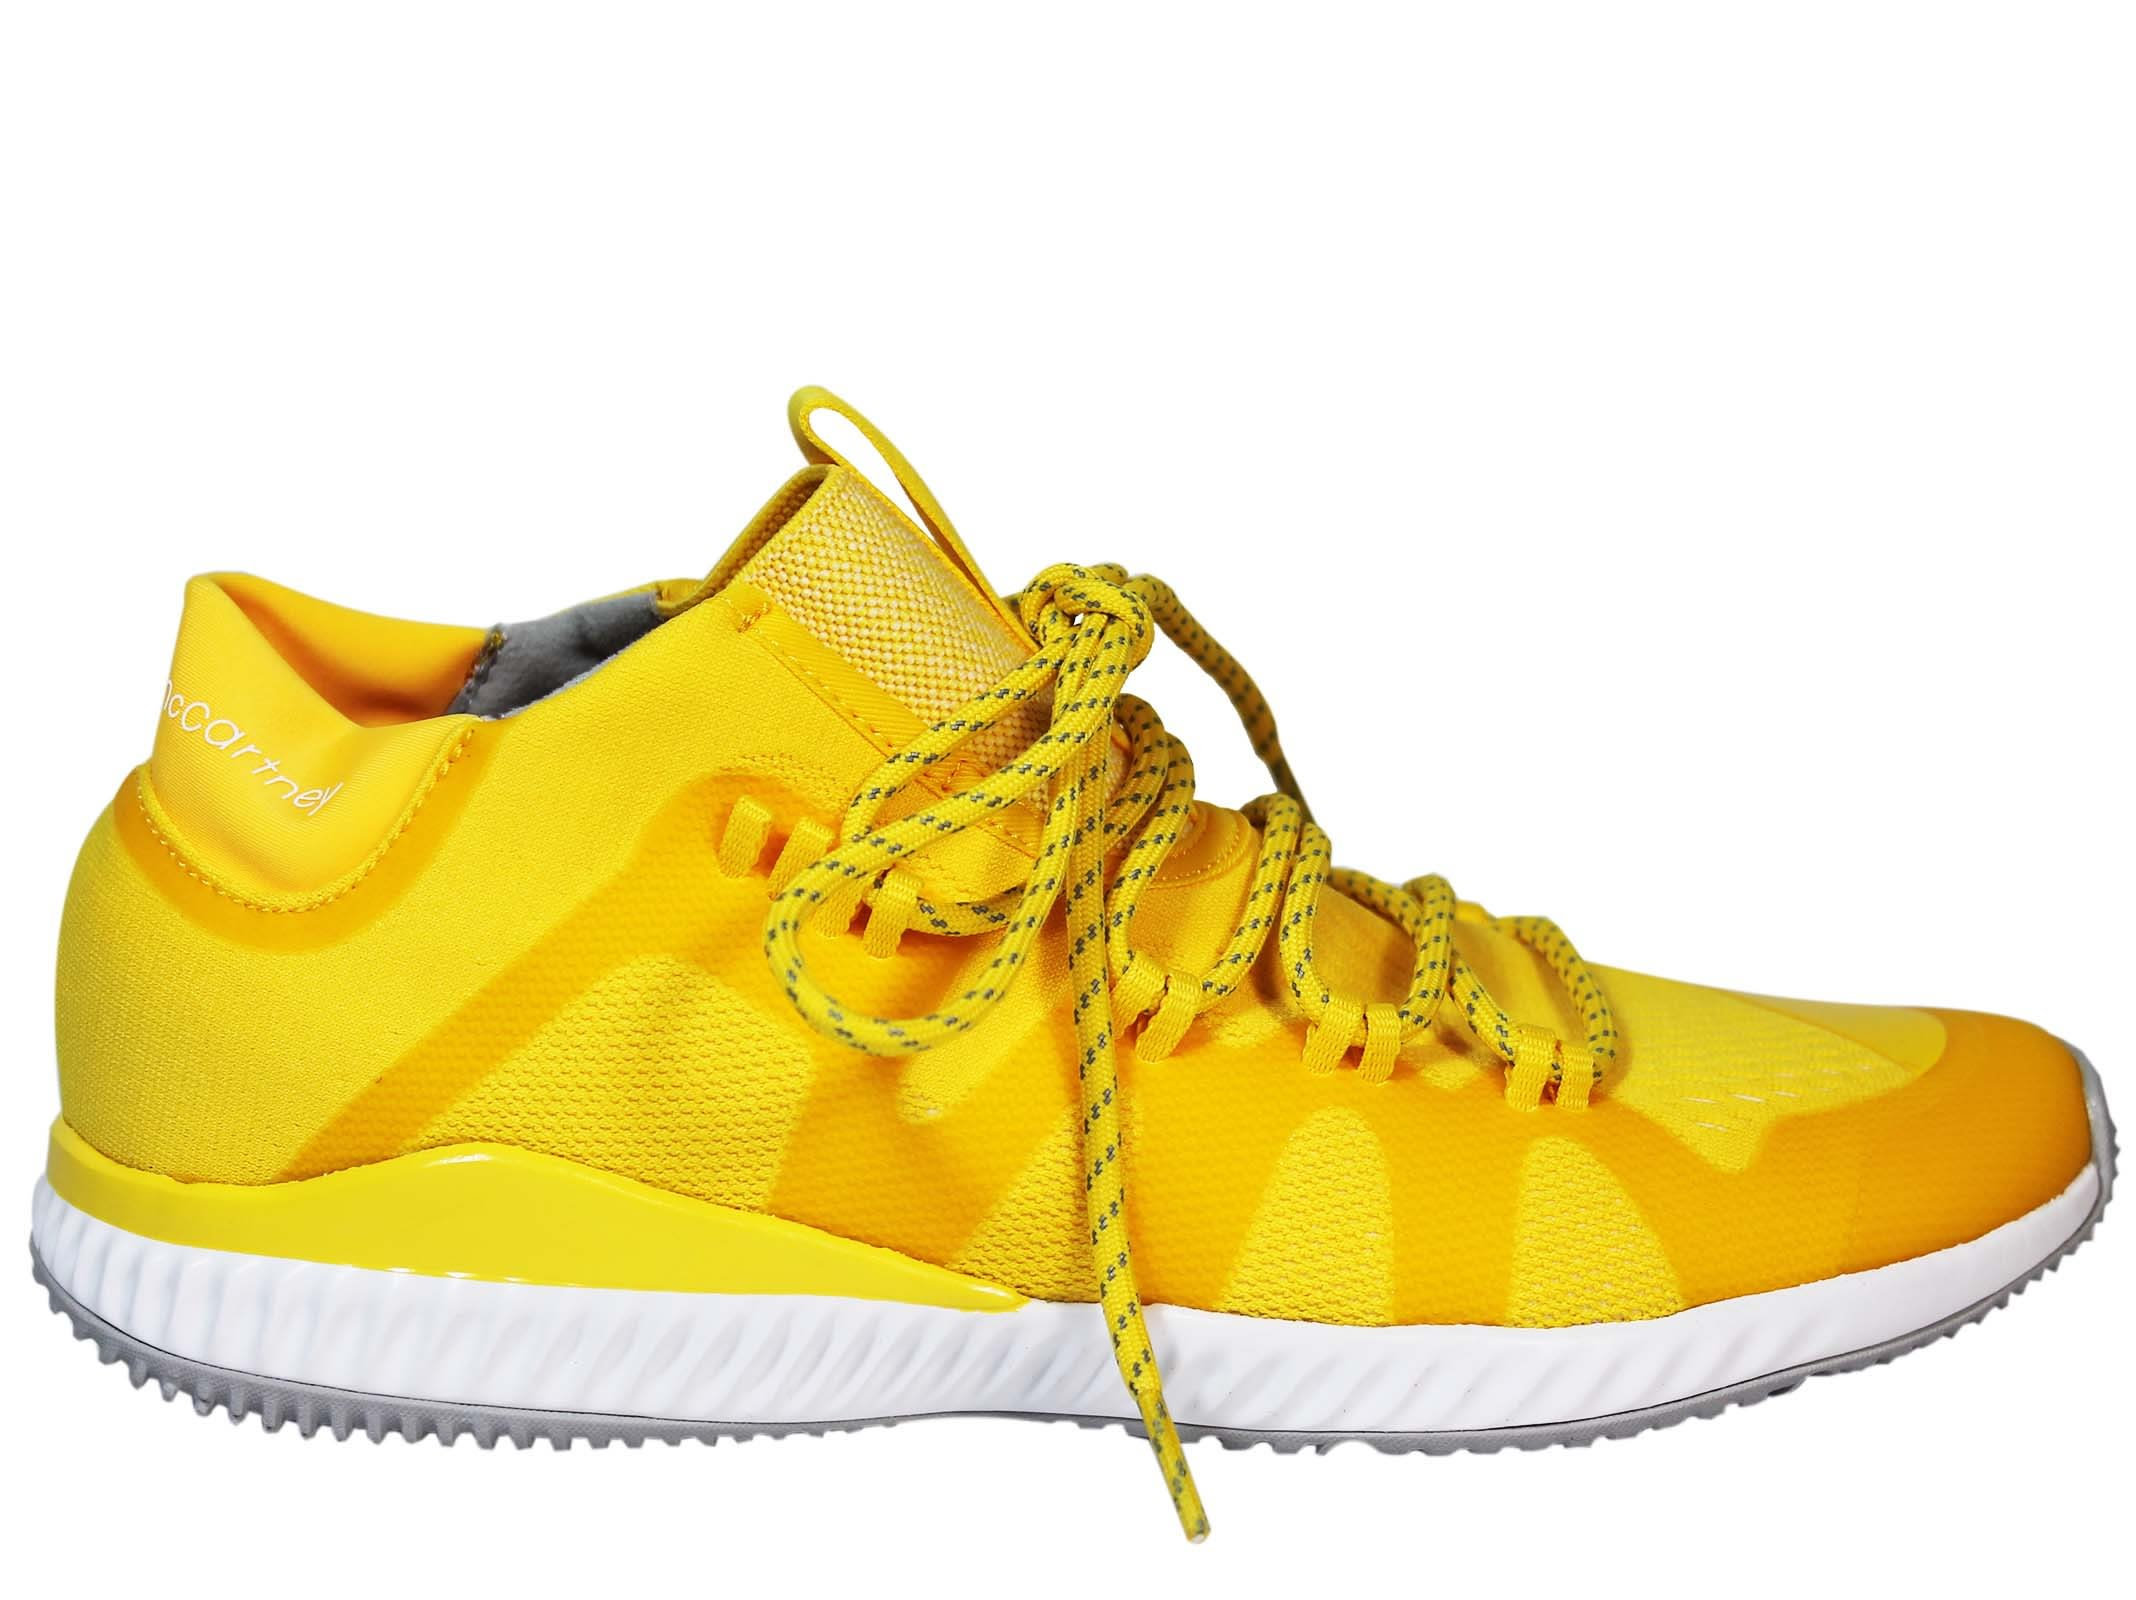 Adidas by Stella McCartney Yellow Crazytrain Low Sneakers